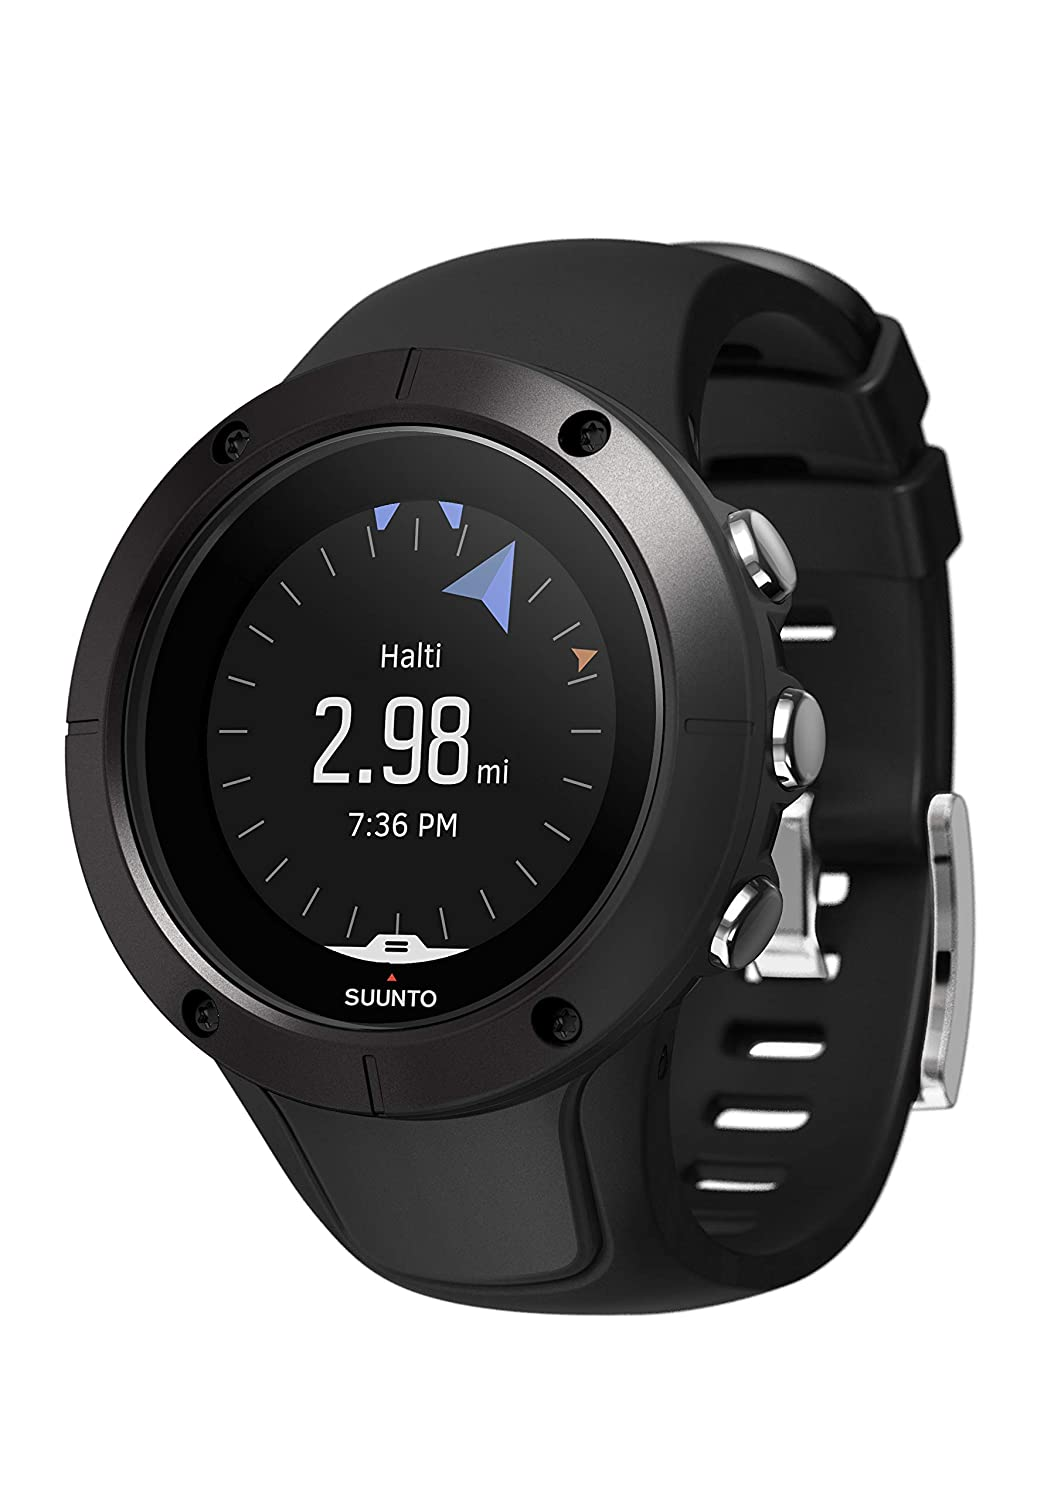 Amazon.com: SUUNTO Spartan Trainer Wrist HR Multisport GPS Watch (Black): Sports & Outdoors